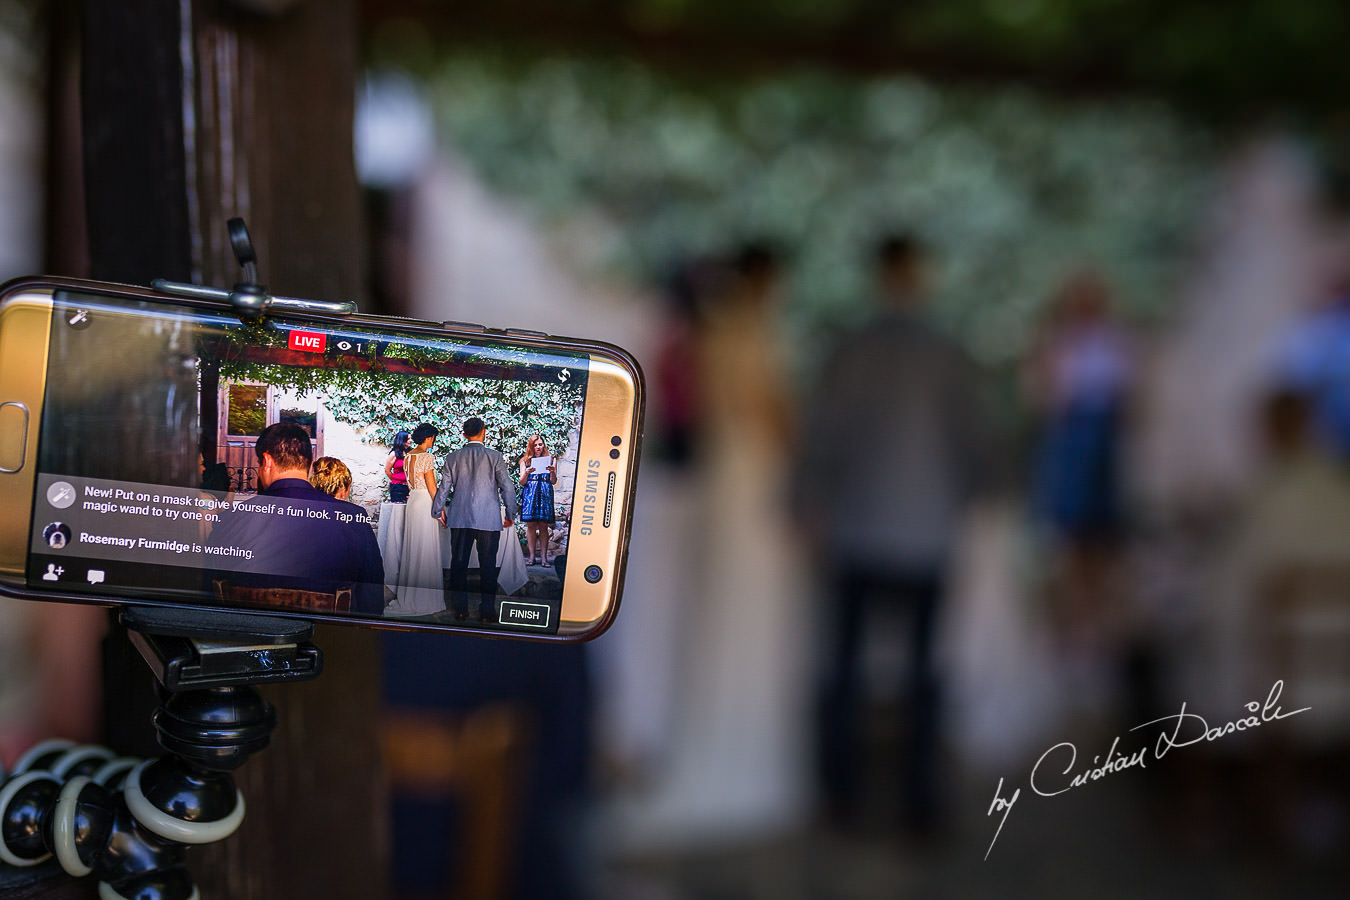 A beautiful wedding day at the Vasilias Nikoklis Inn in Paphos, captured by Cristian Dascalu. The grandmother of the groom is watching the ceremony live on Facebook.